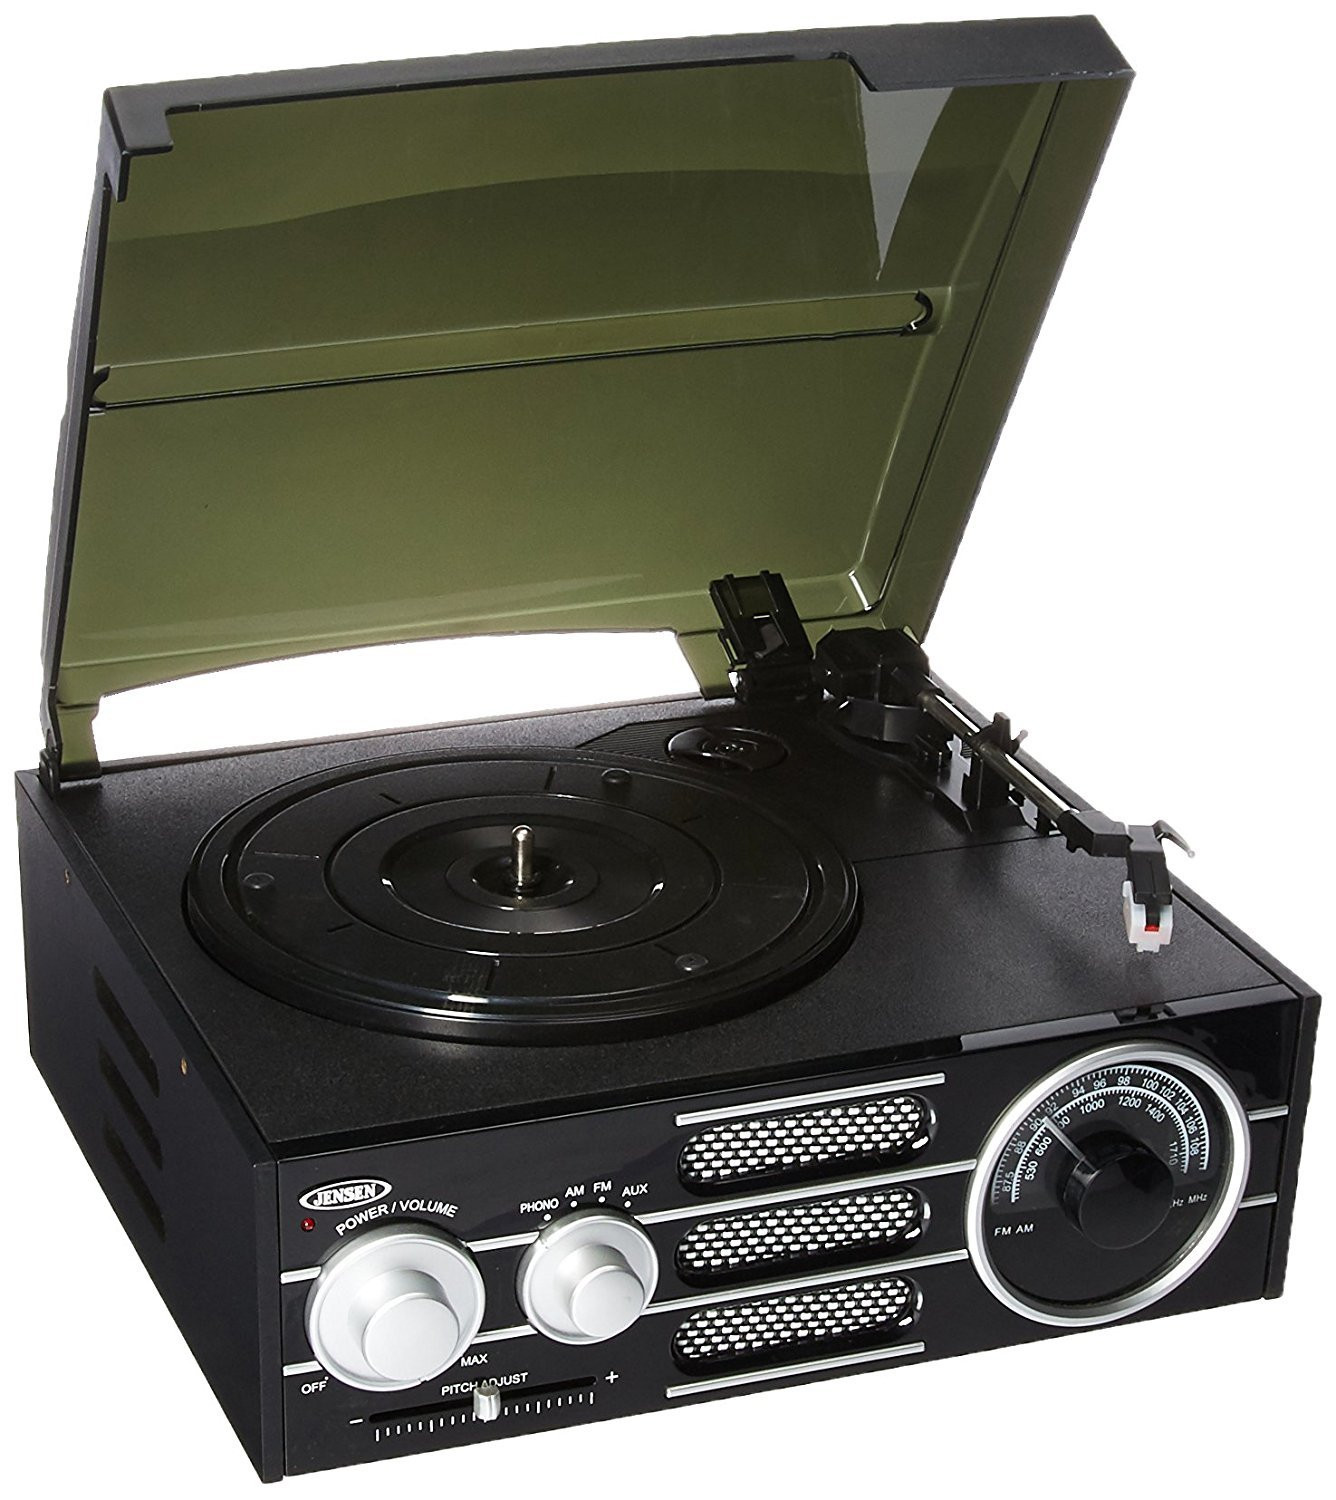 Turntable, Black Jensen Portable 3-speed Record Player Usb Stereo Turntable